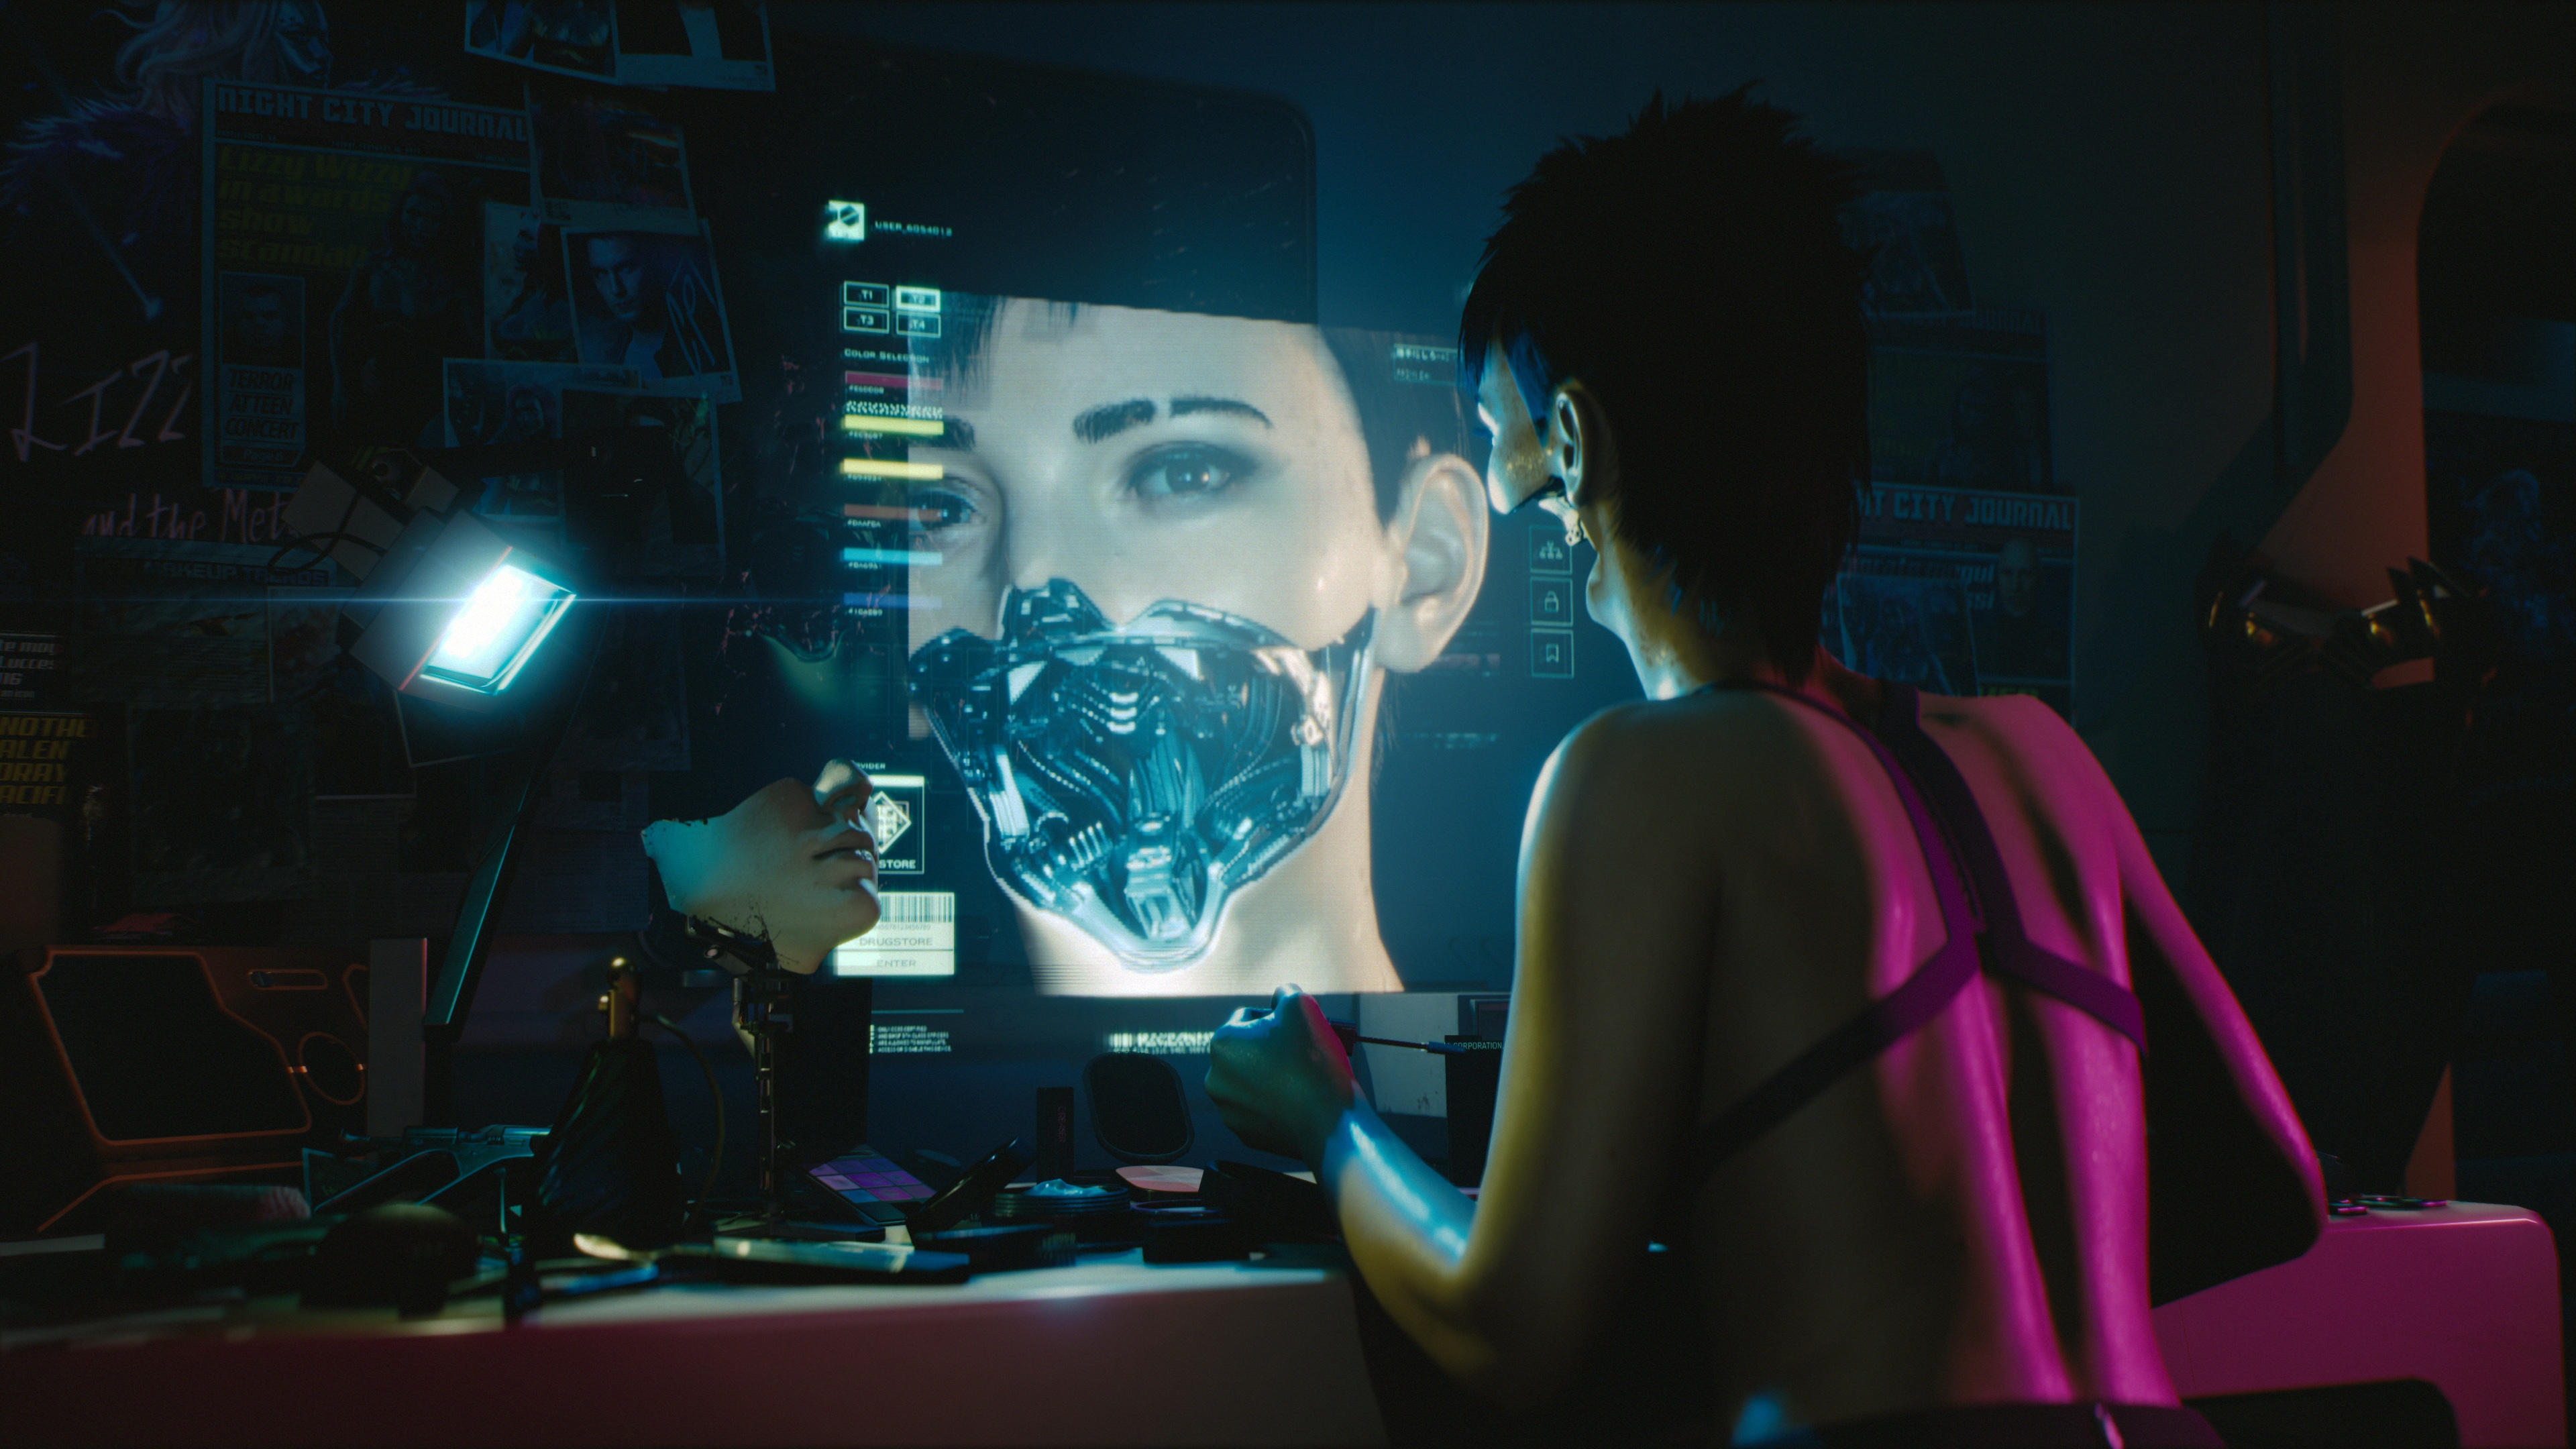 A cybernetic woman looks at herself in a computer monitor in Cyberpunk 2077